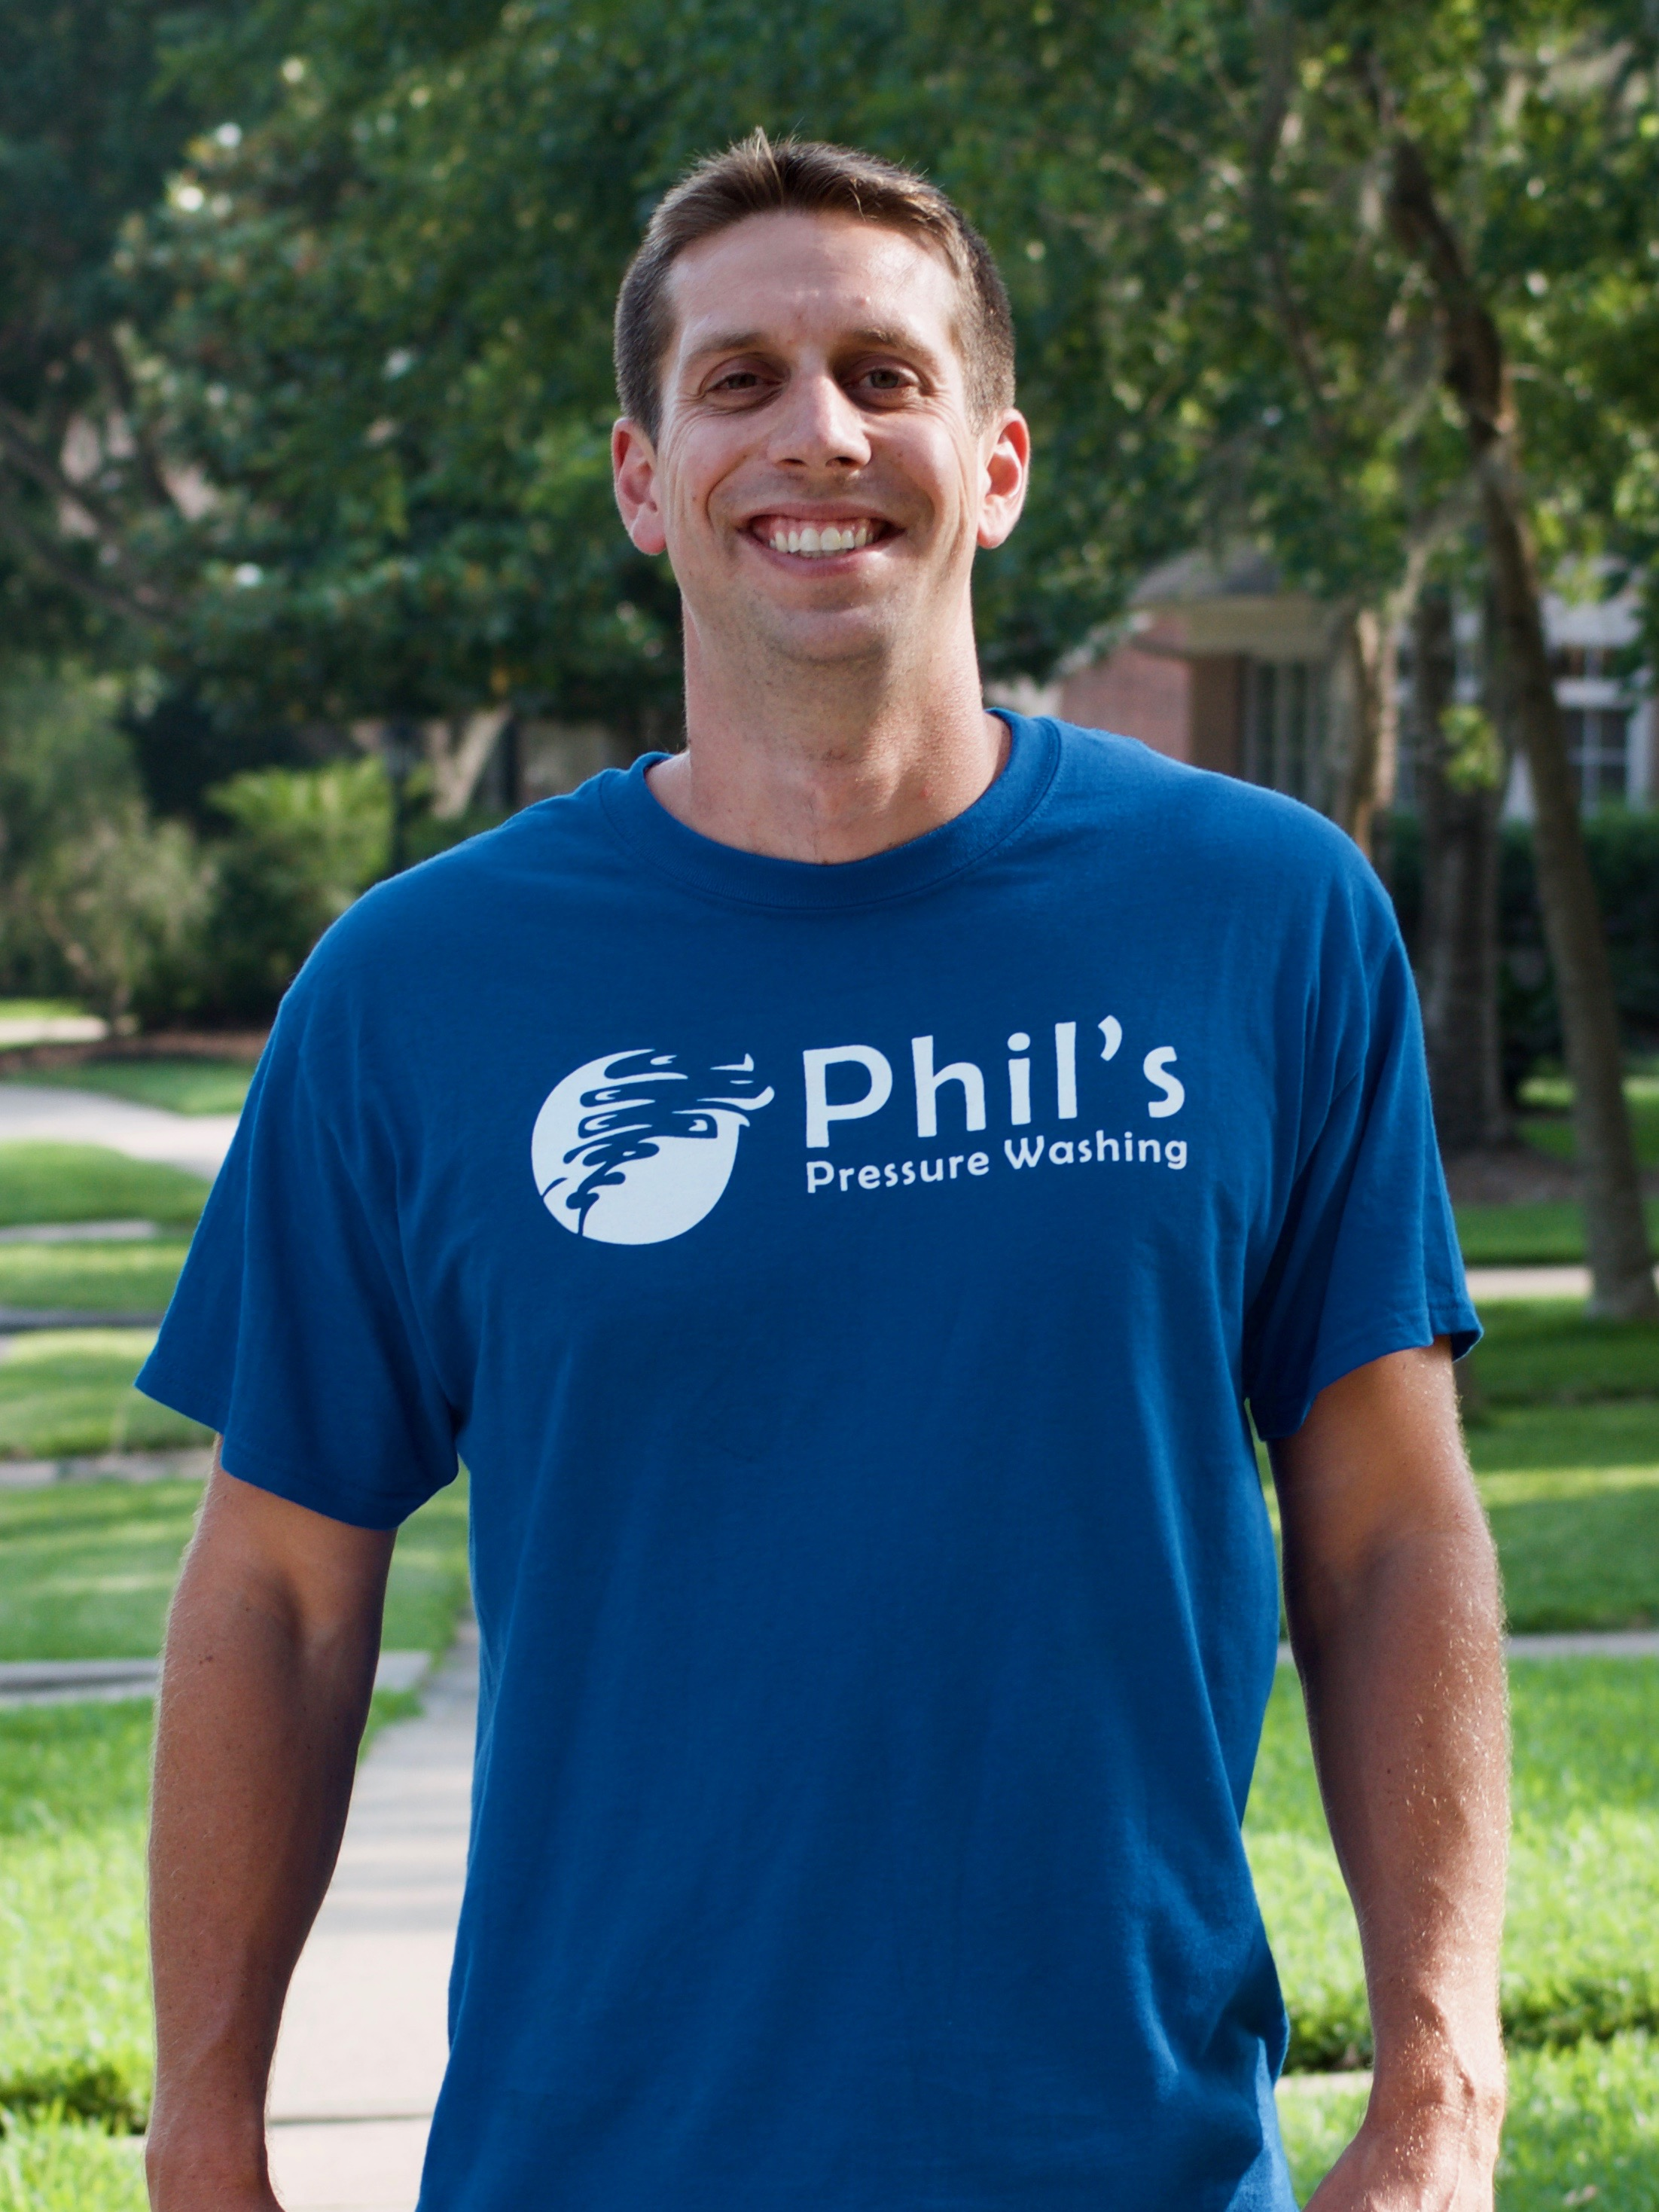 Phil -Owner - Phil graduated from Texas A&M University in 2008, and founded Phil's Pressure Washing shortly thereafter. When he's not working, he enjoys playing basketball and walking his dog Zena.